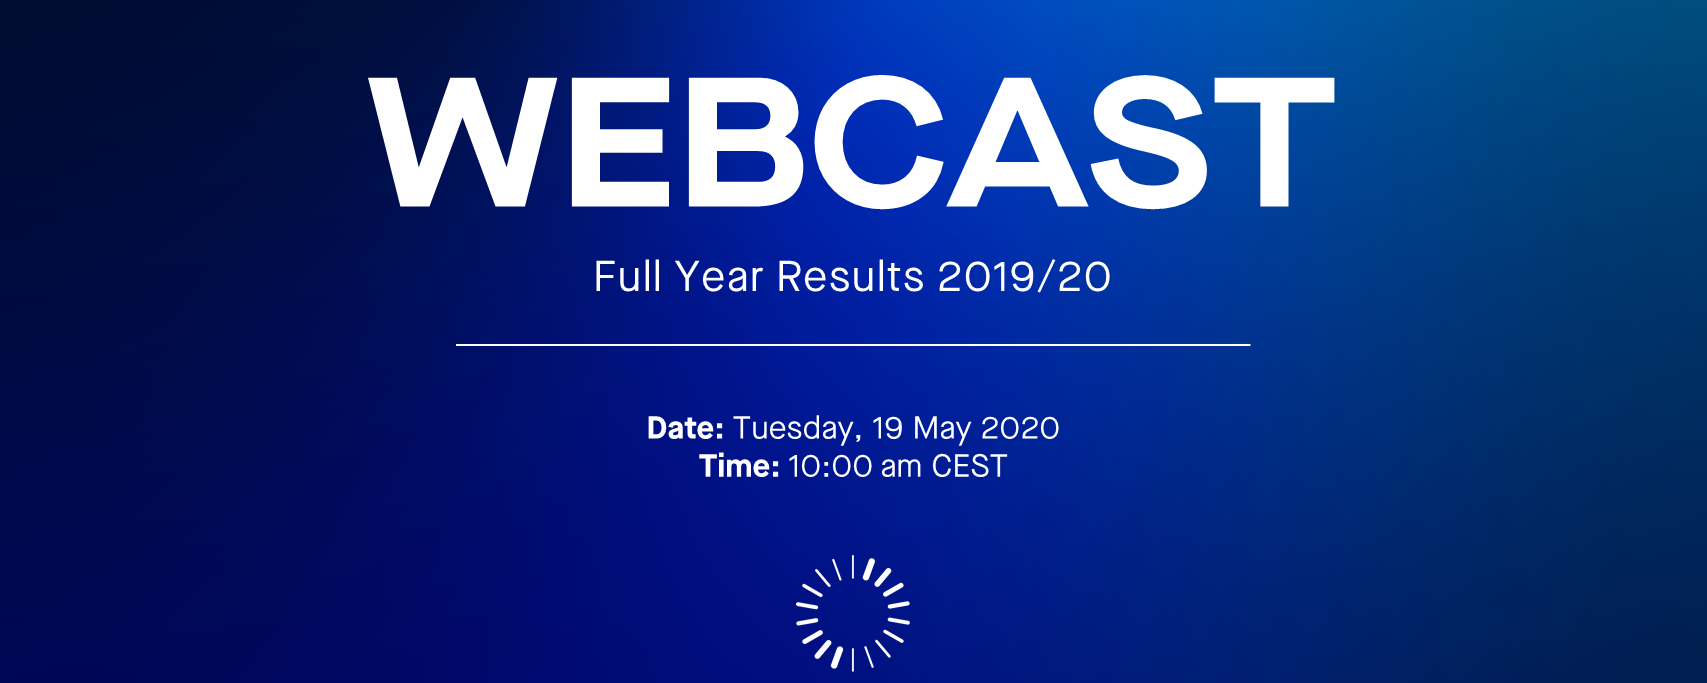 Webcast FY 2019-20